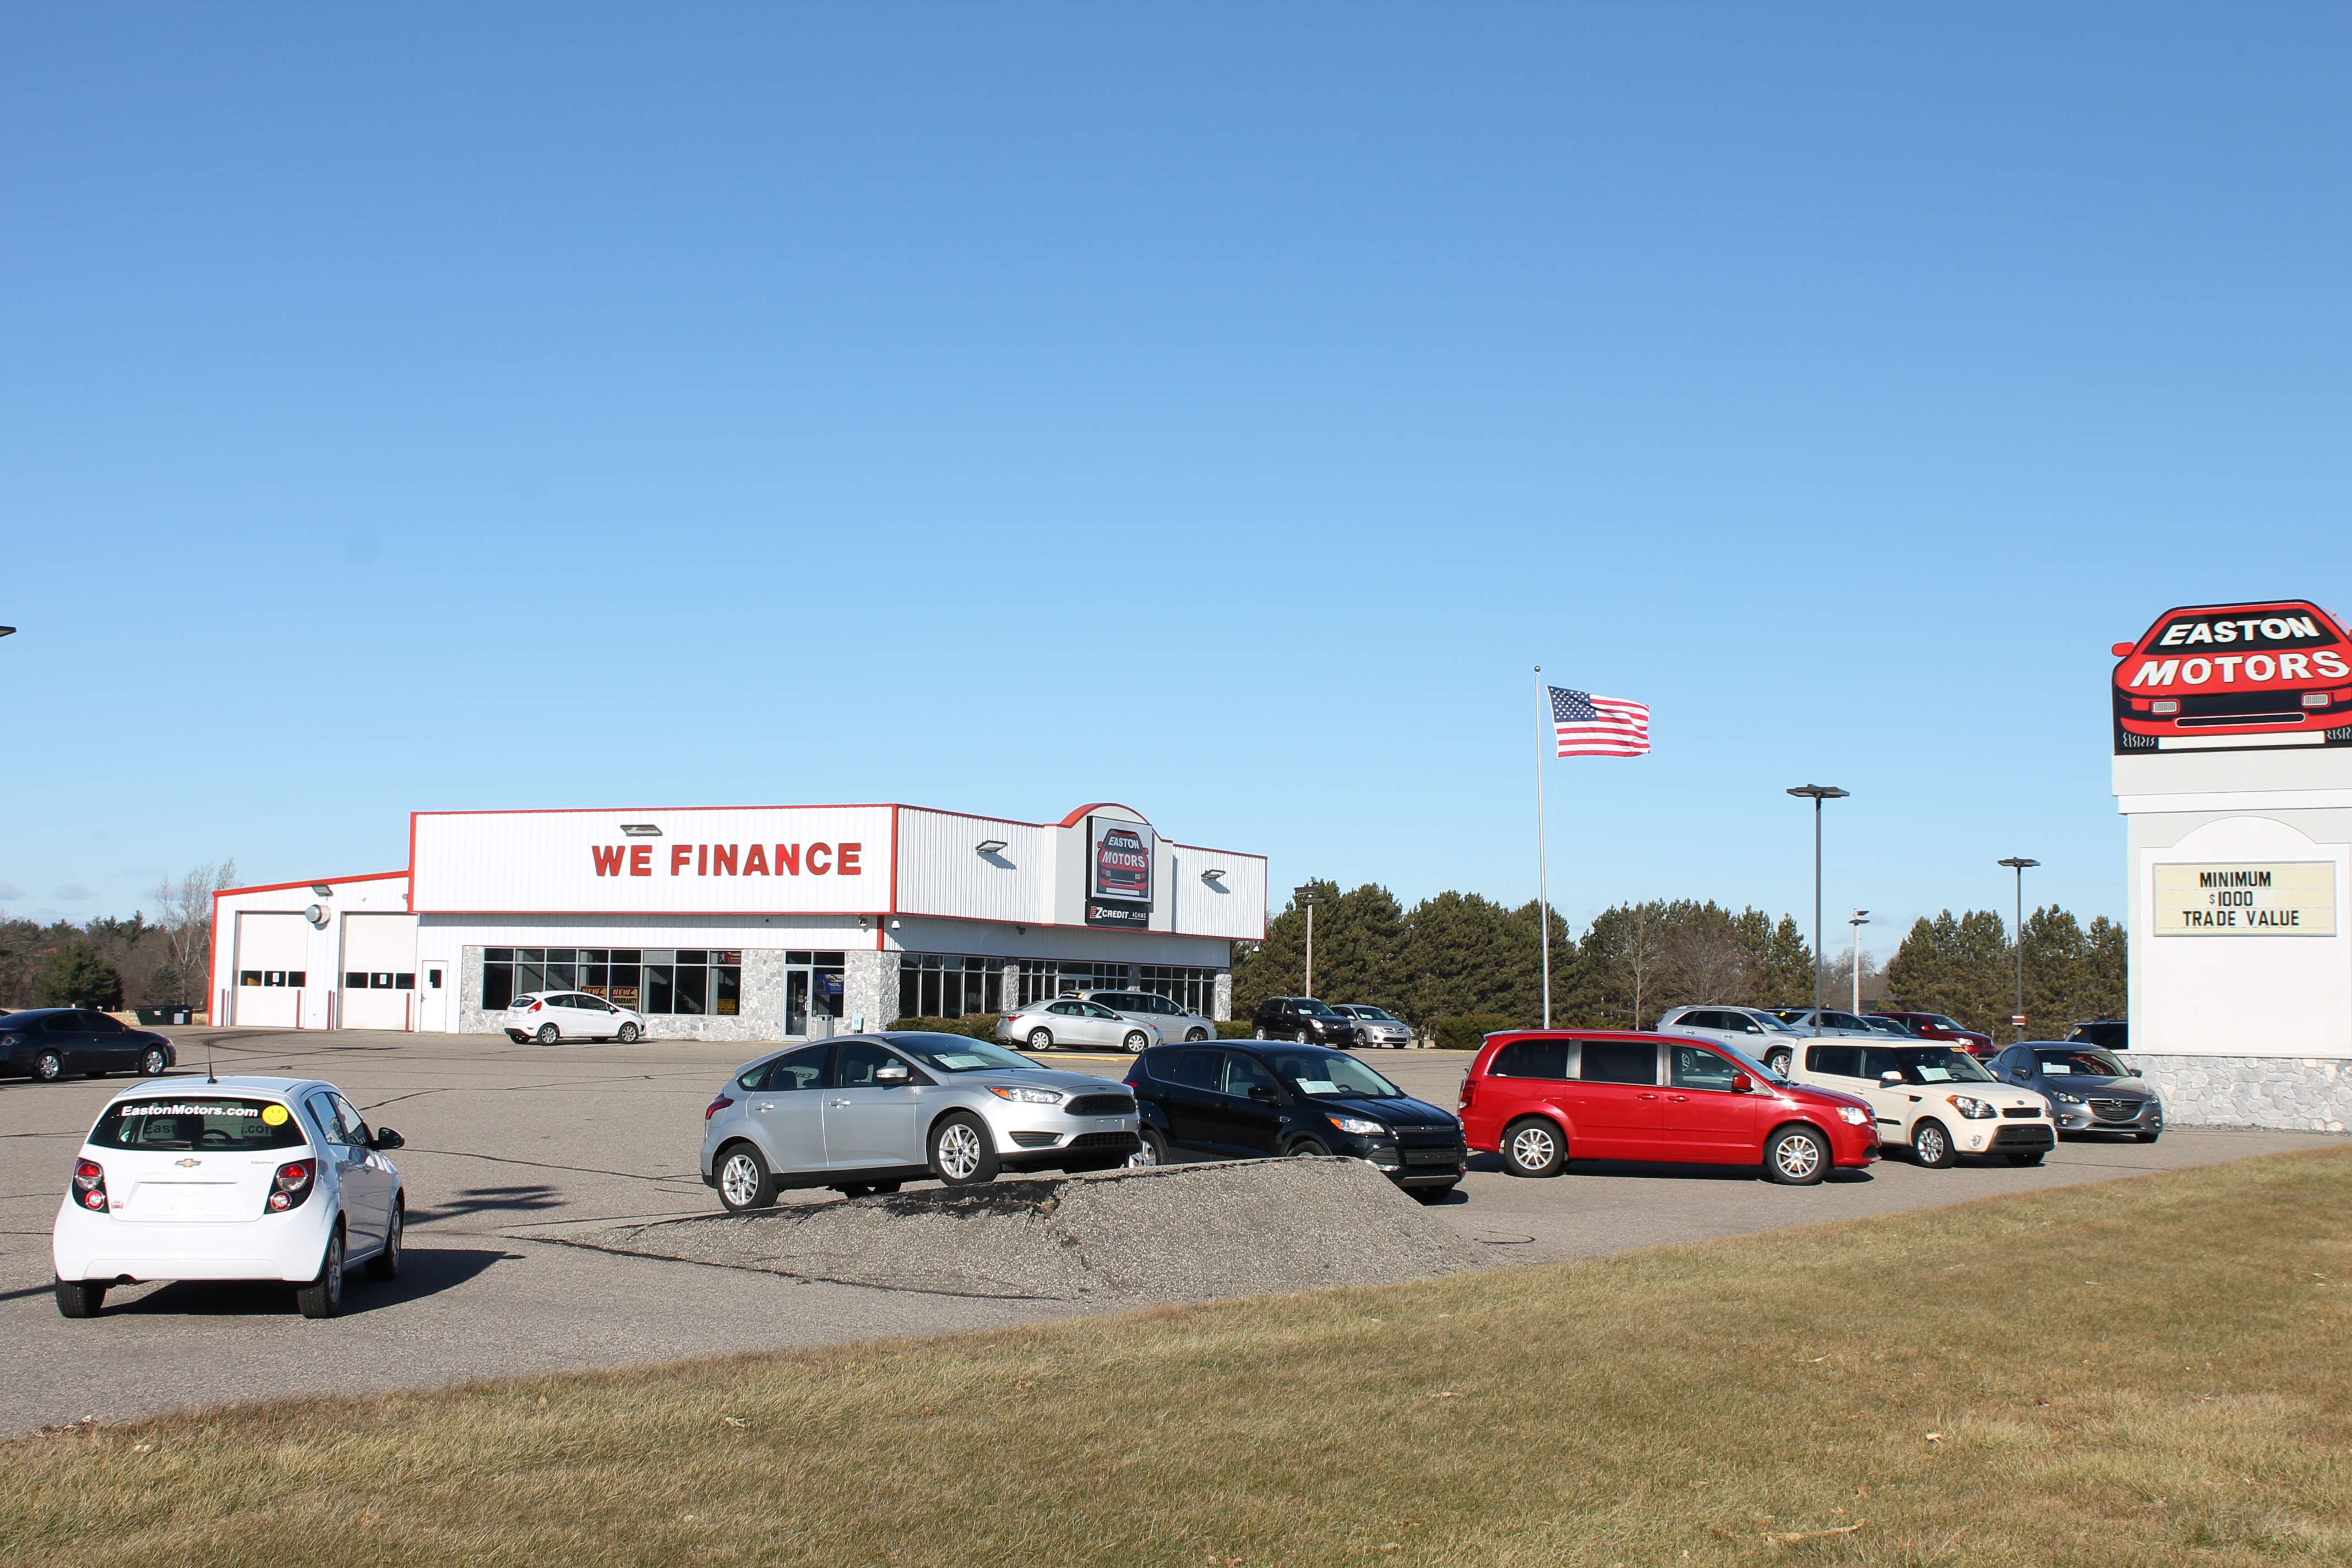 Easton Motors of Adams: Discovering the Center of It All